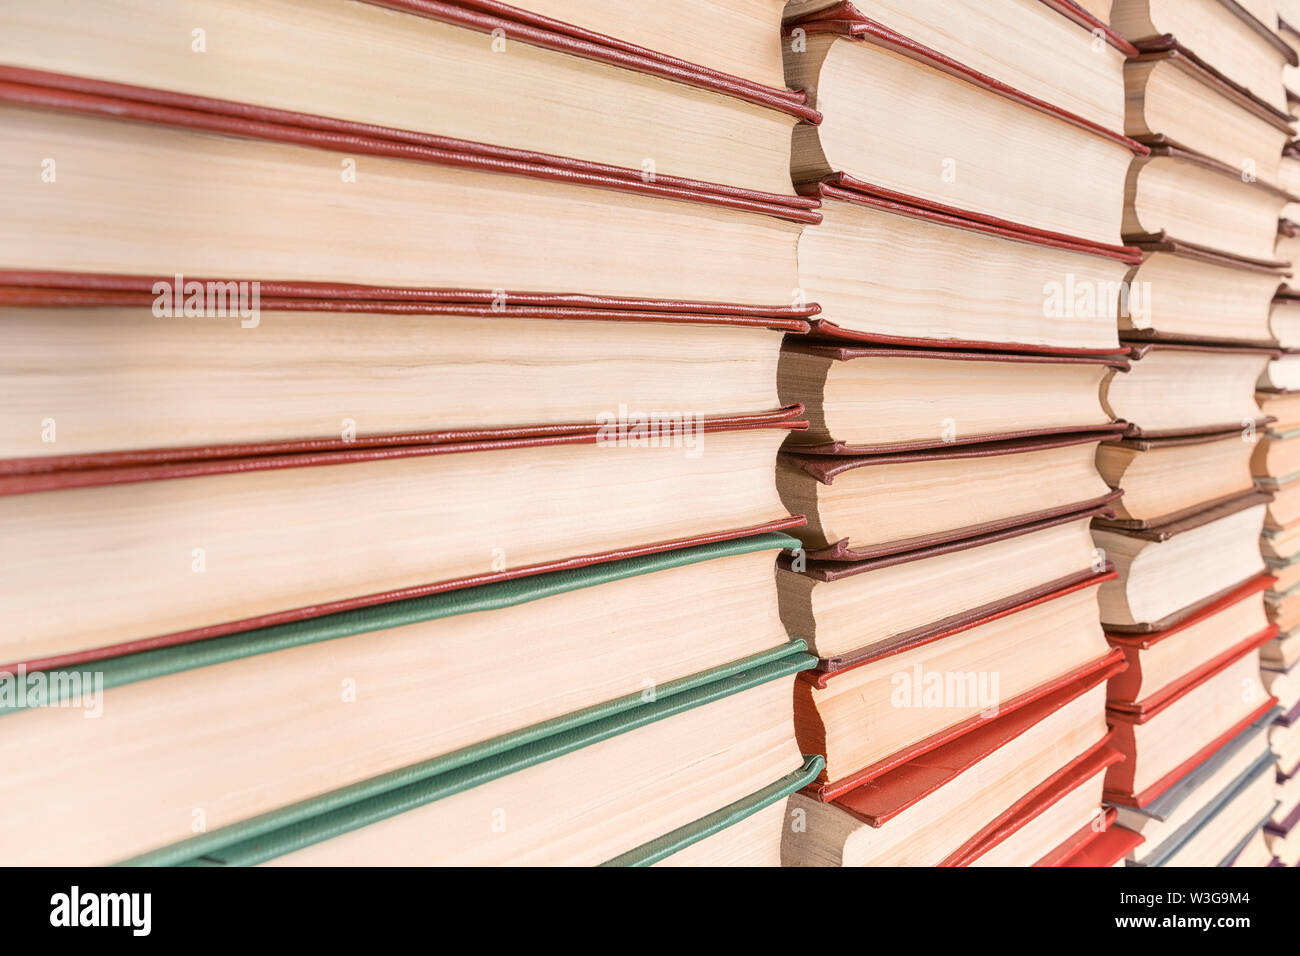 Books pile diminishing perspective view. Texture and background Stock Photo